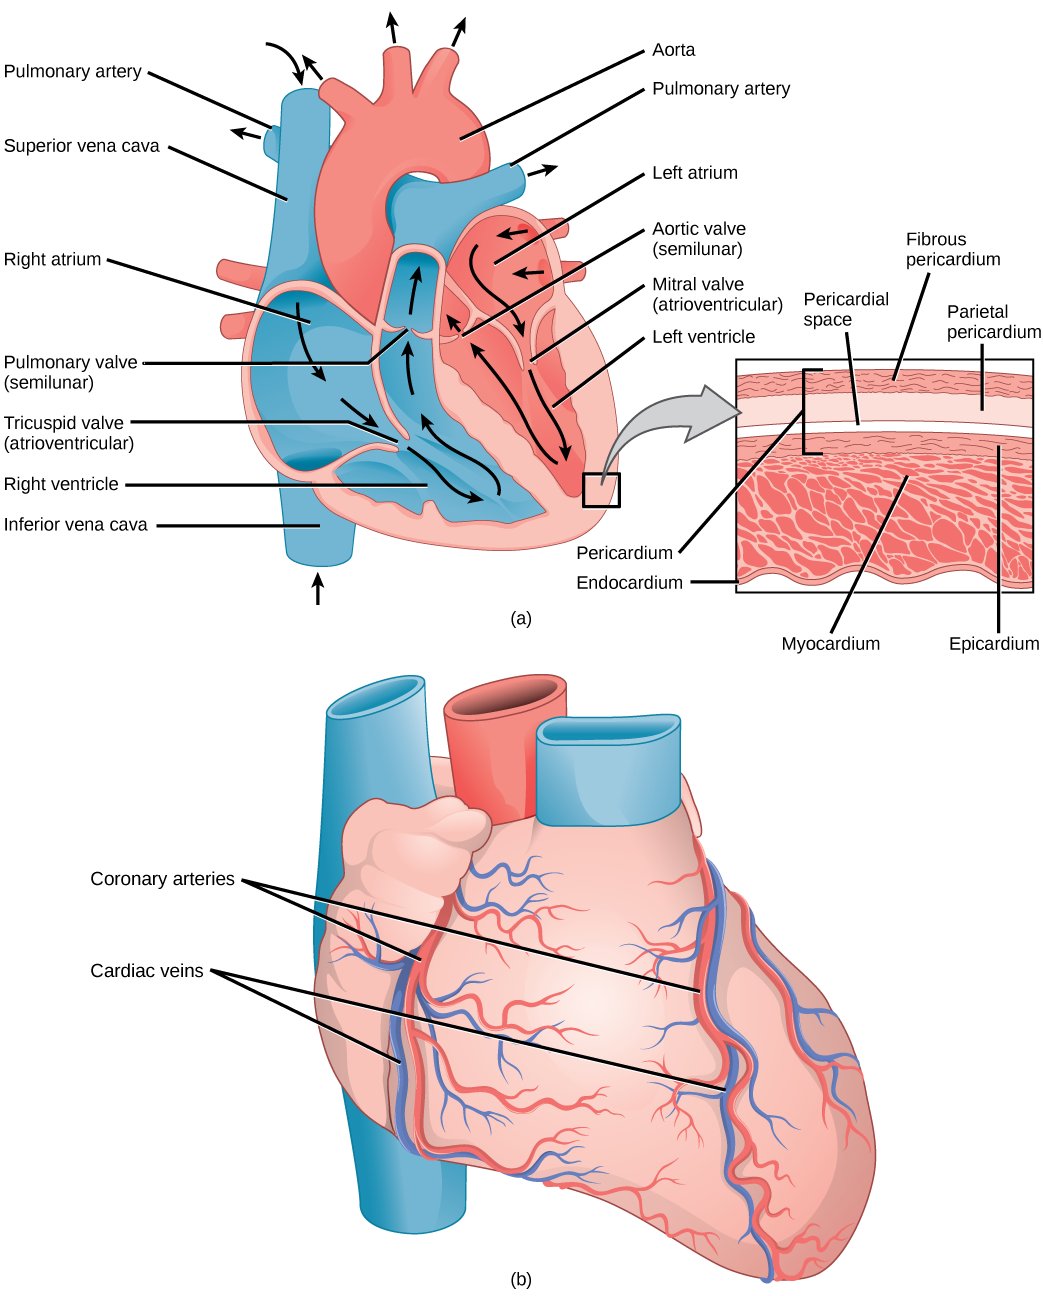 Openstax Biology Top Hat Marketplace Diagram Of Prokaryotic Cell By Mariana Ruiz Figure 4011 A The Heart Is Primarily Made Thick Muscle Layer Called Myocardium Surrounded Membranes One Way Valves Separate Four